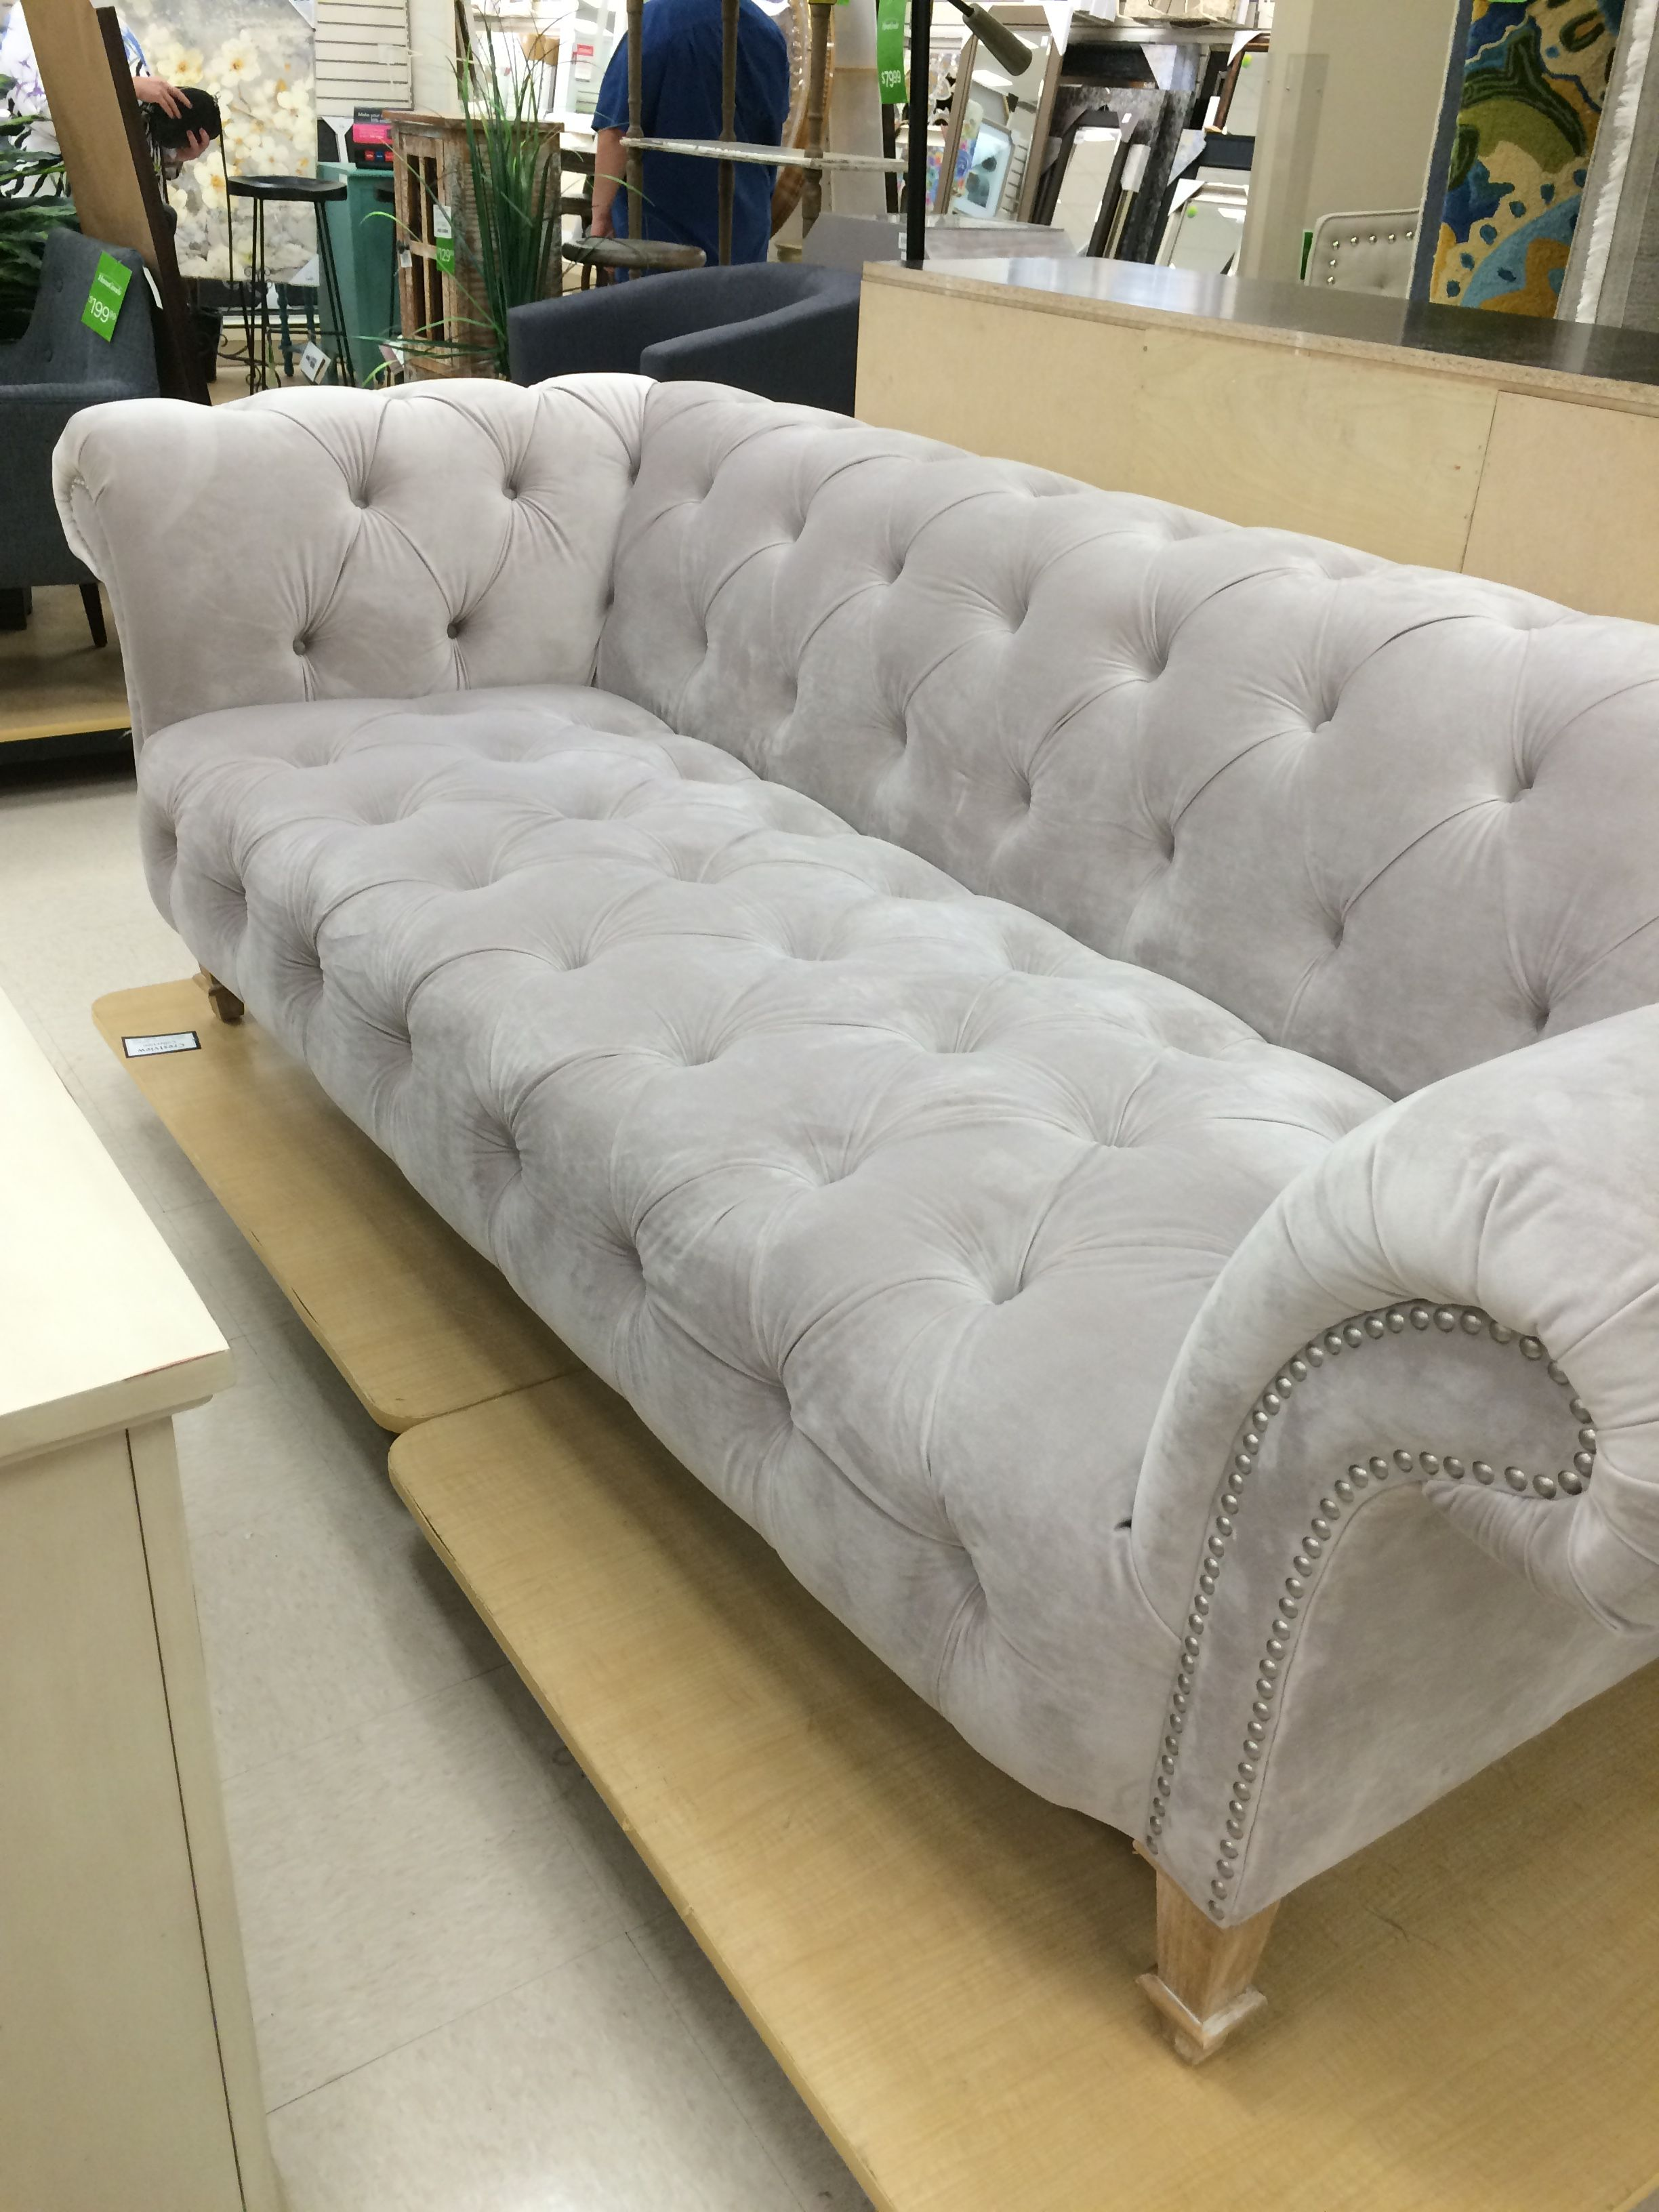 Nicole Miller Dining Chair Home Goods Crate And Barrel Rocking Slipcover Couch At Marshall 39s Gorgeous Decor